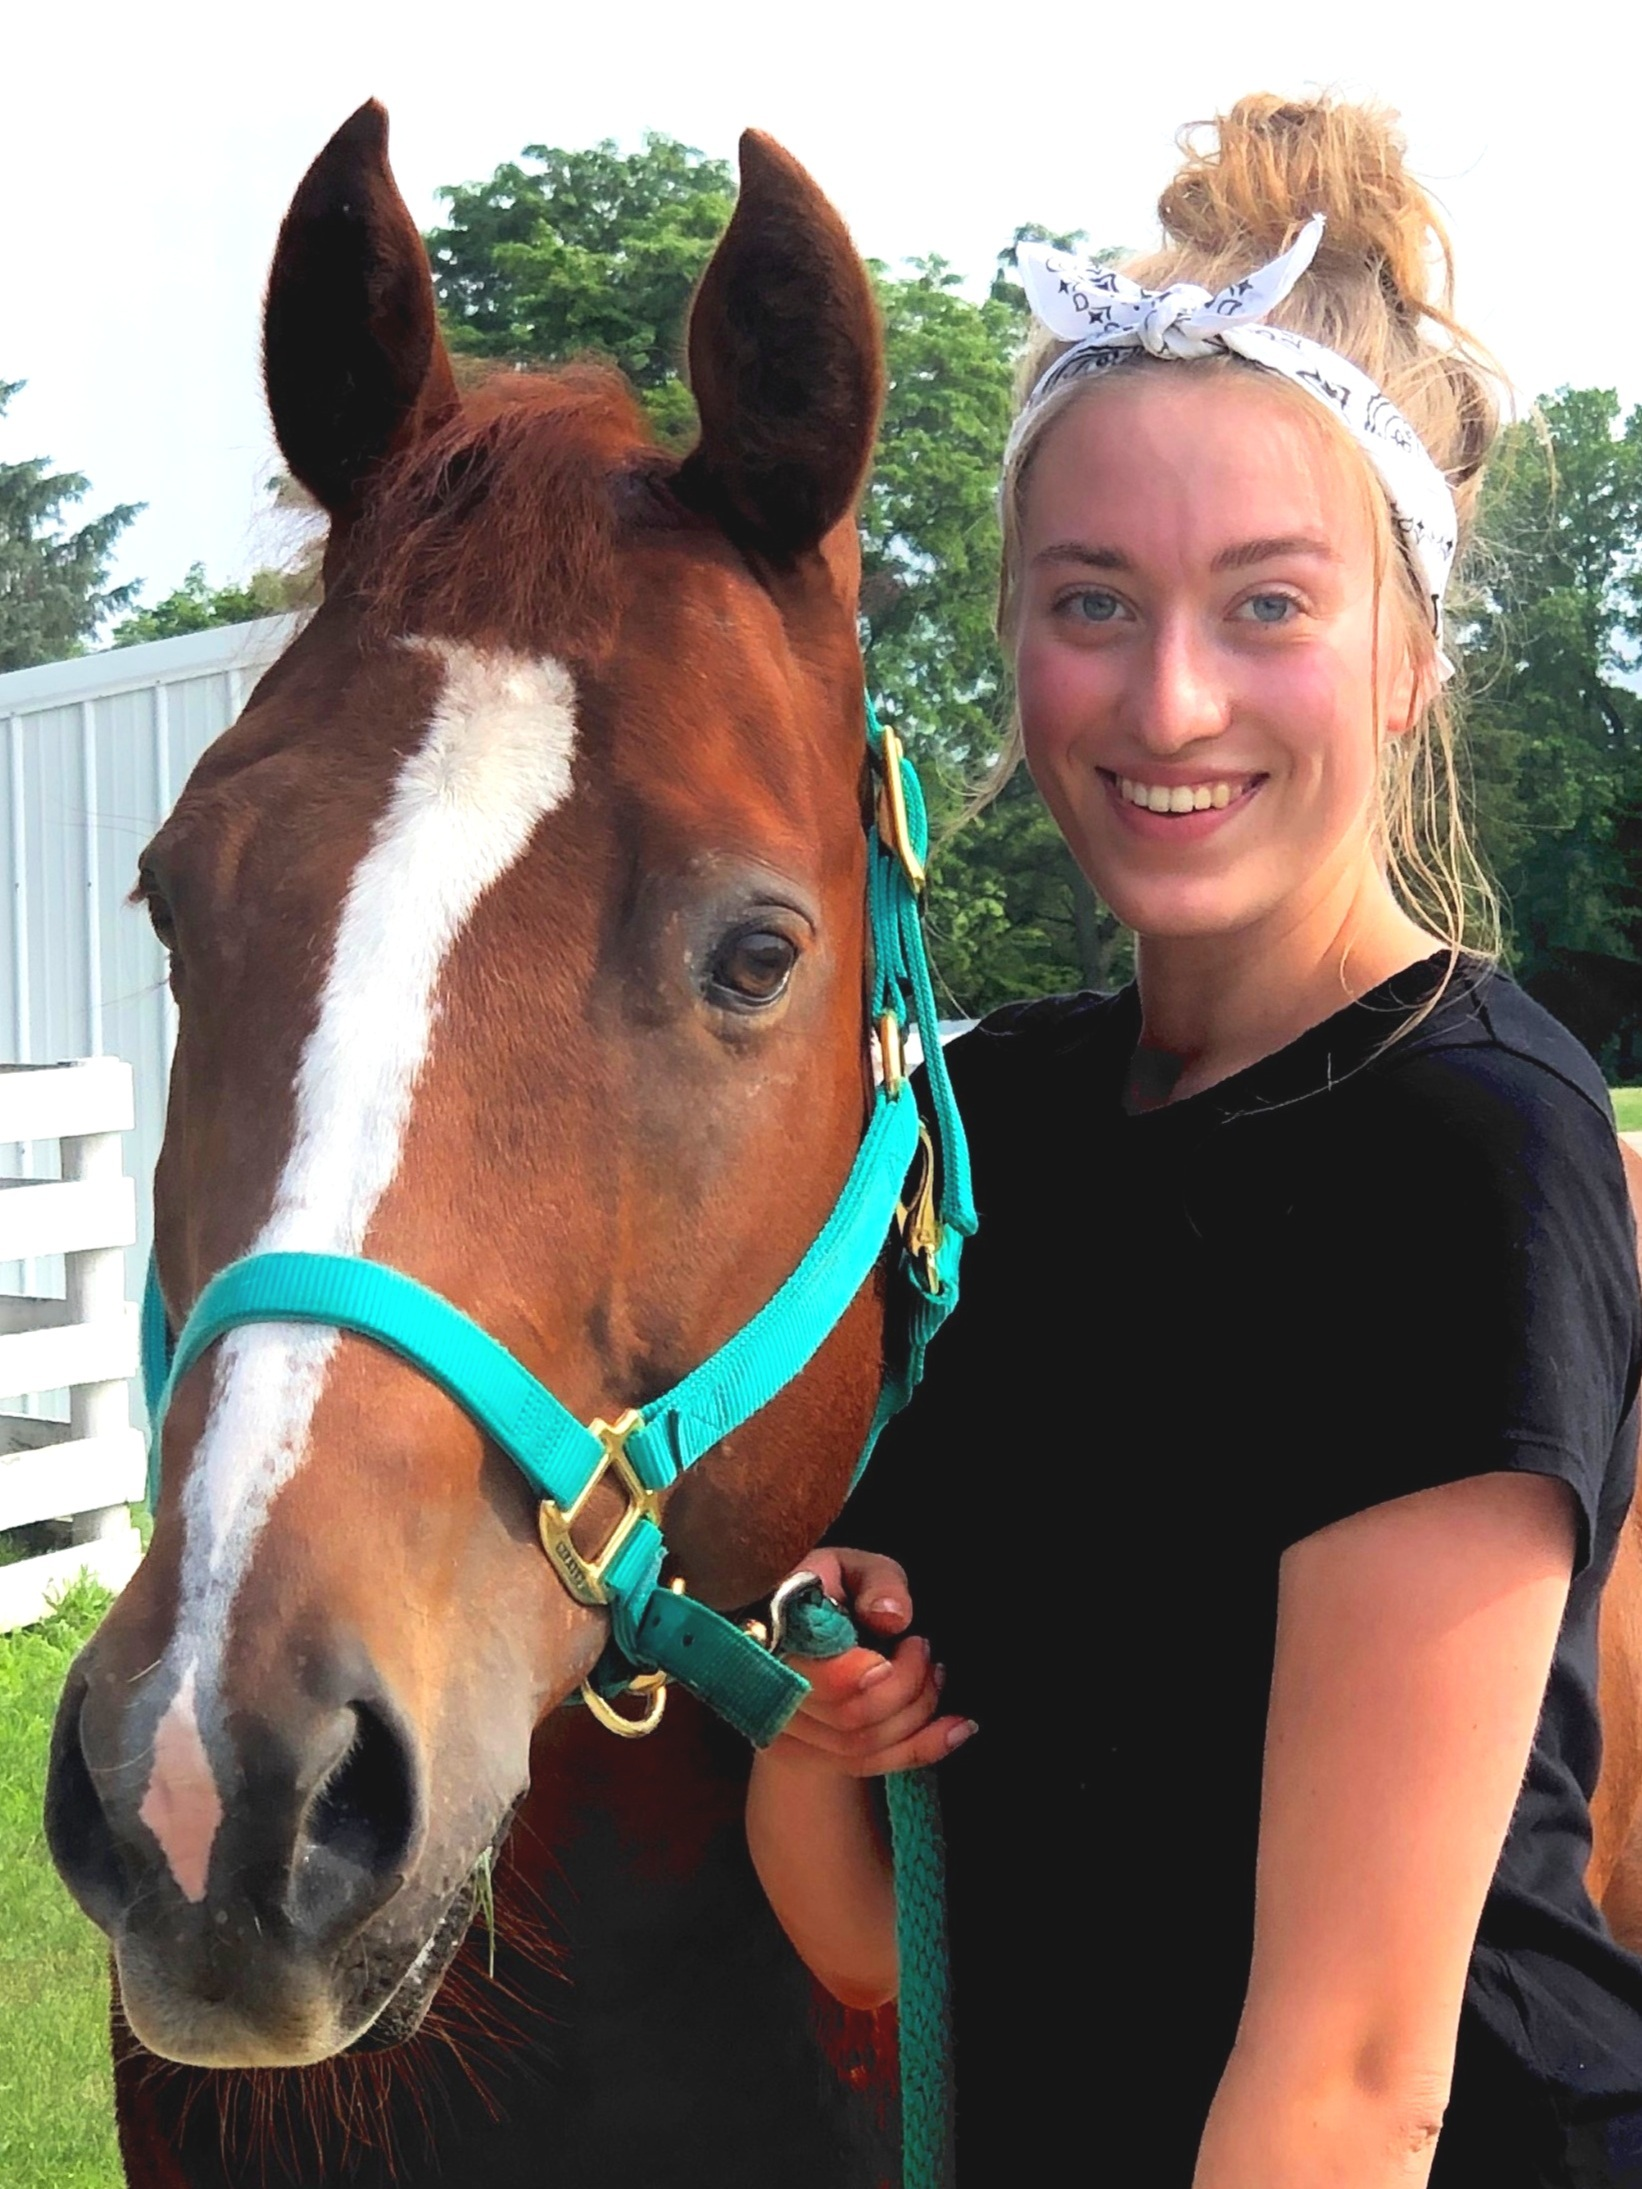 Hi, I'm Carley! I'm 18 years old and have been riding with Heavenly Horses for over 10 years. I will ride any discipline from jumping to western pleasure. As long as I'm on a horse, I'm happy! My favorite horse is Jesse. He's such a sweet boy but he does have a mischievous side that you've just got to love. I also spend a lot of time with Vinnie. The horses and people here have become an extension of my family and I don't know what I would do without them. Working with horses and kids has taught me some of life's most valuable lessons, and it has definitely kept me laughing. There is never a dull moment here!